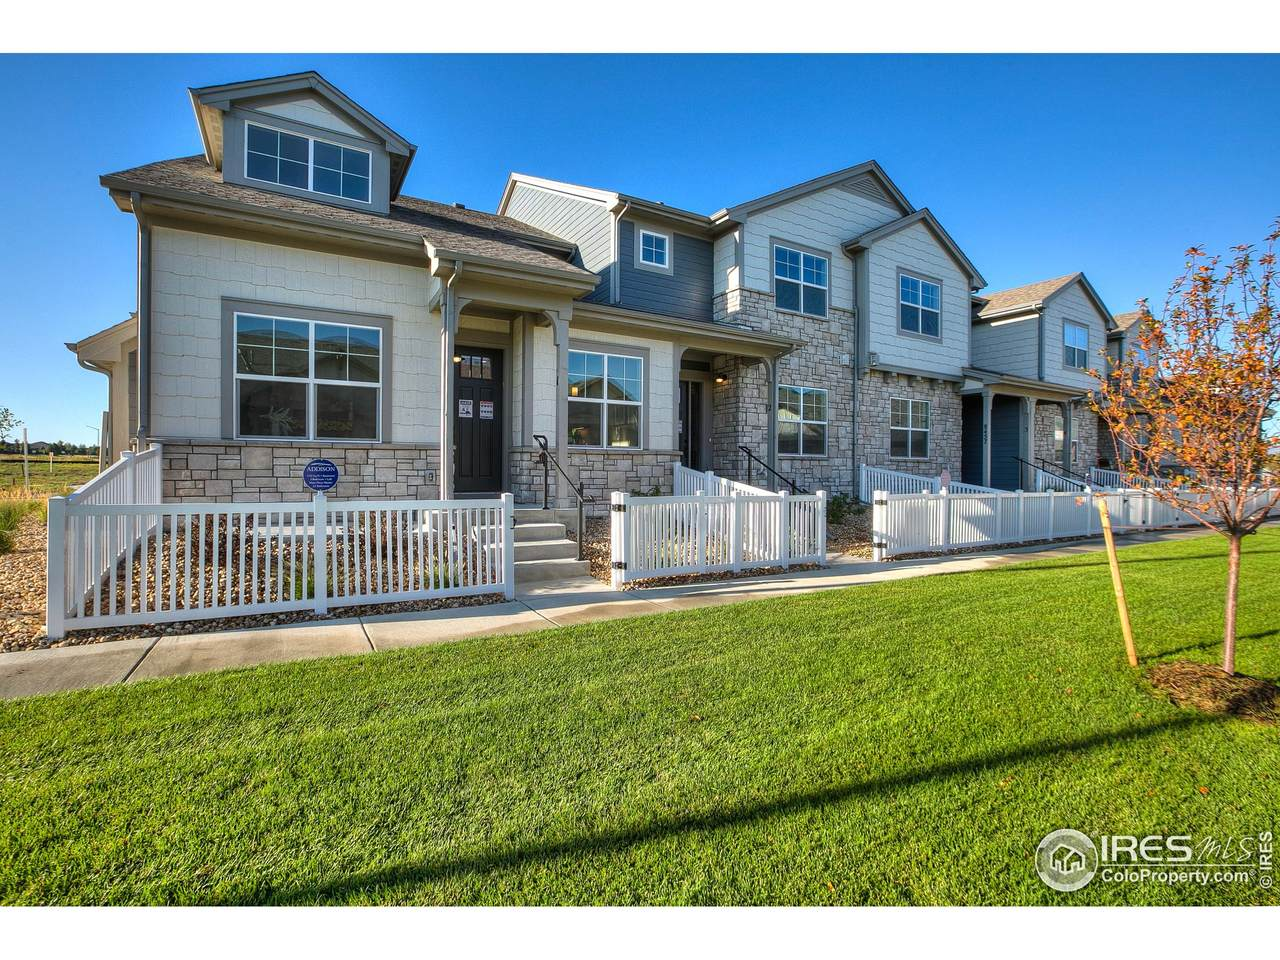 8482 Cromwell Dr - Photo 1